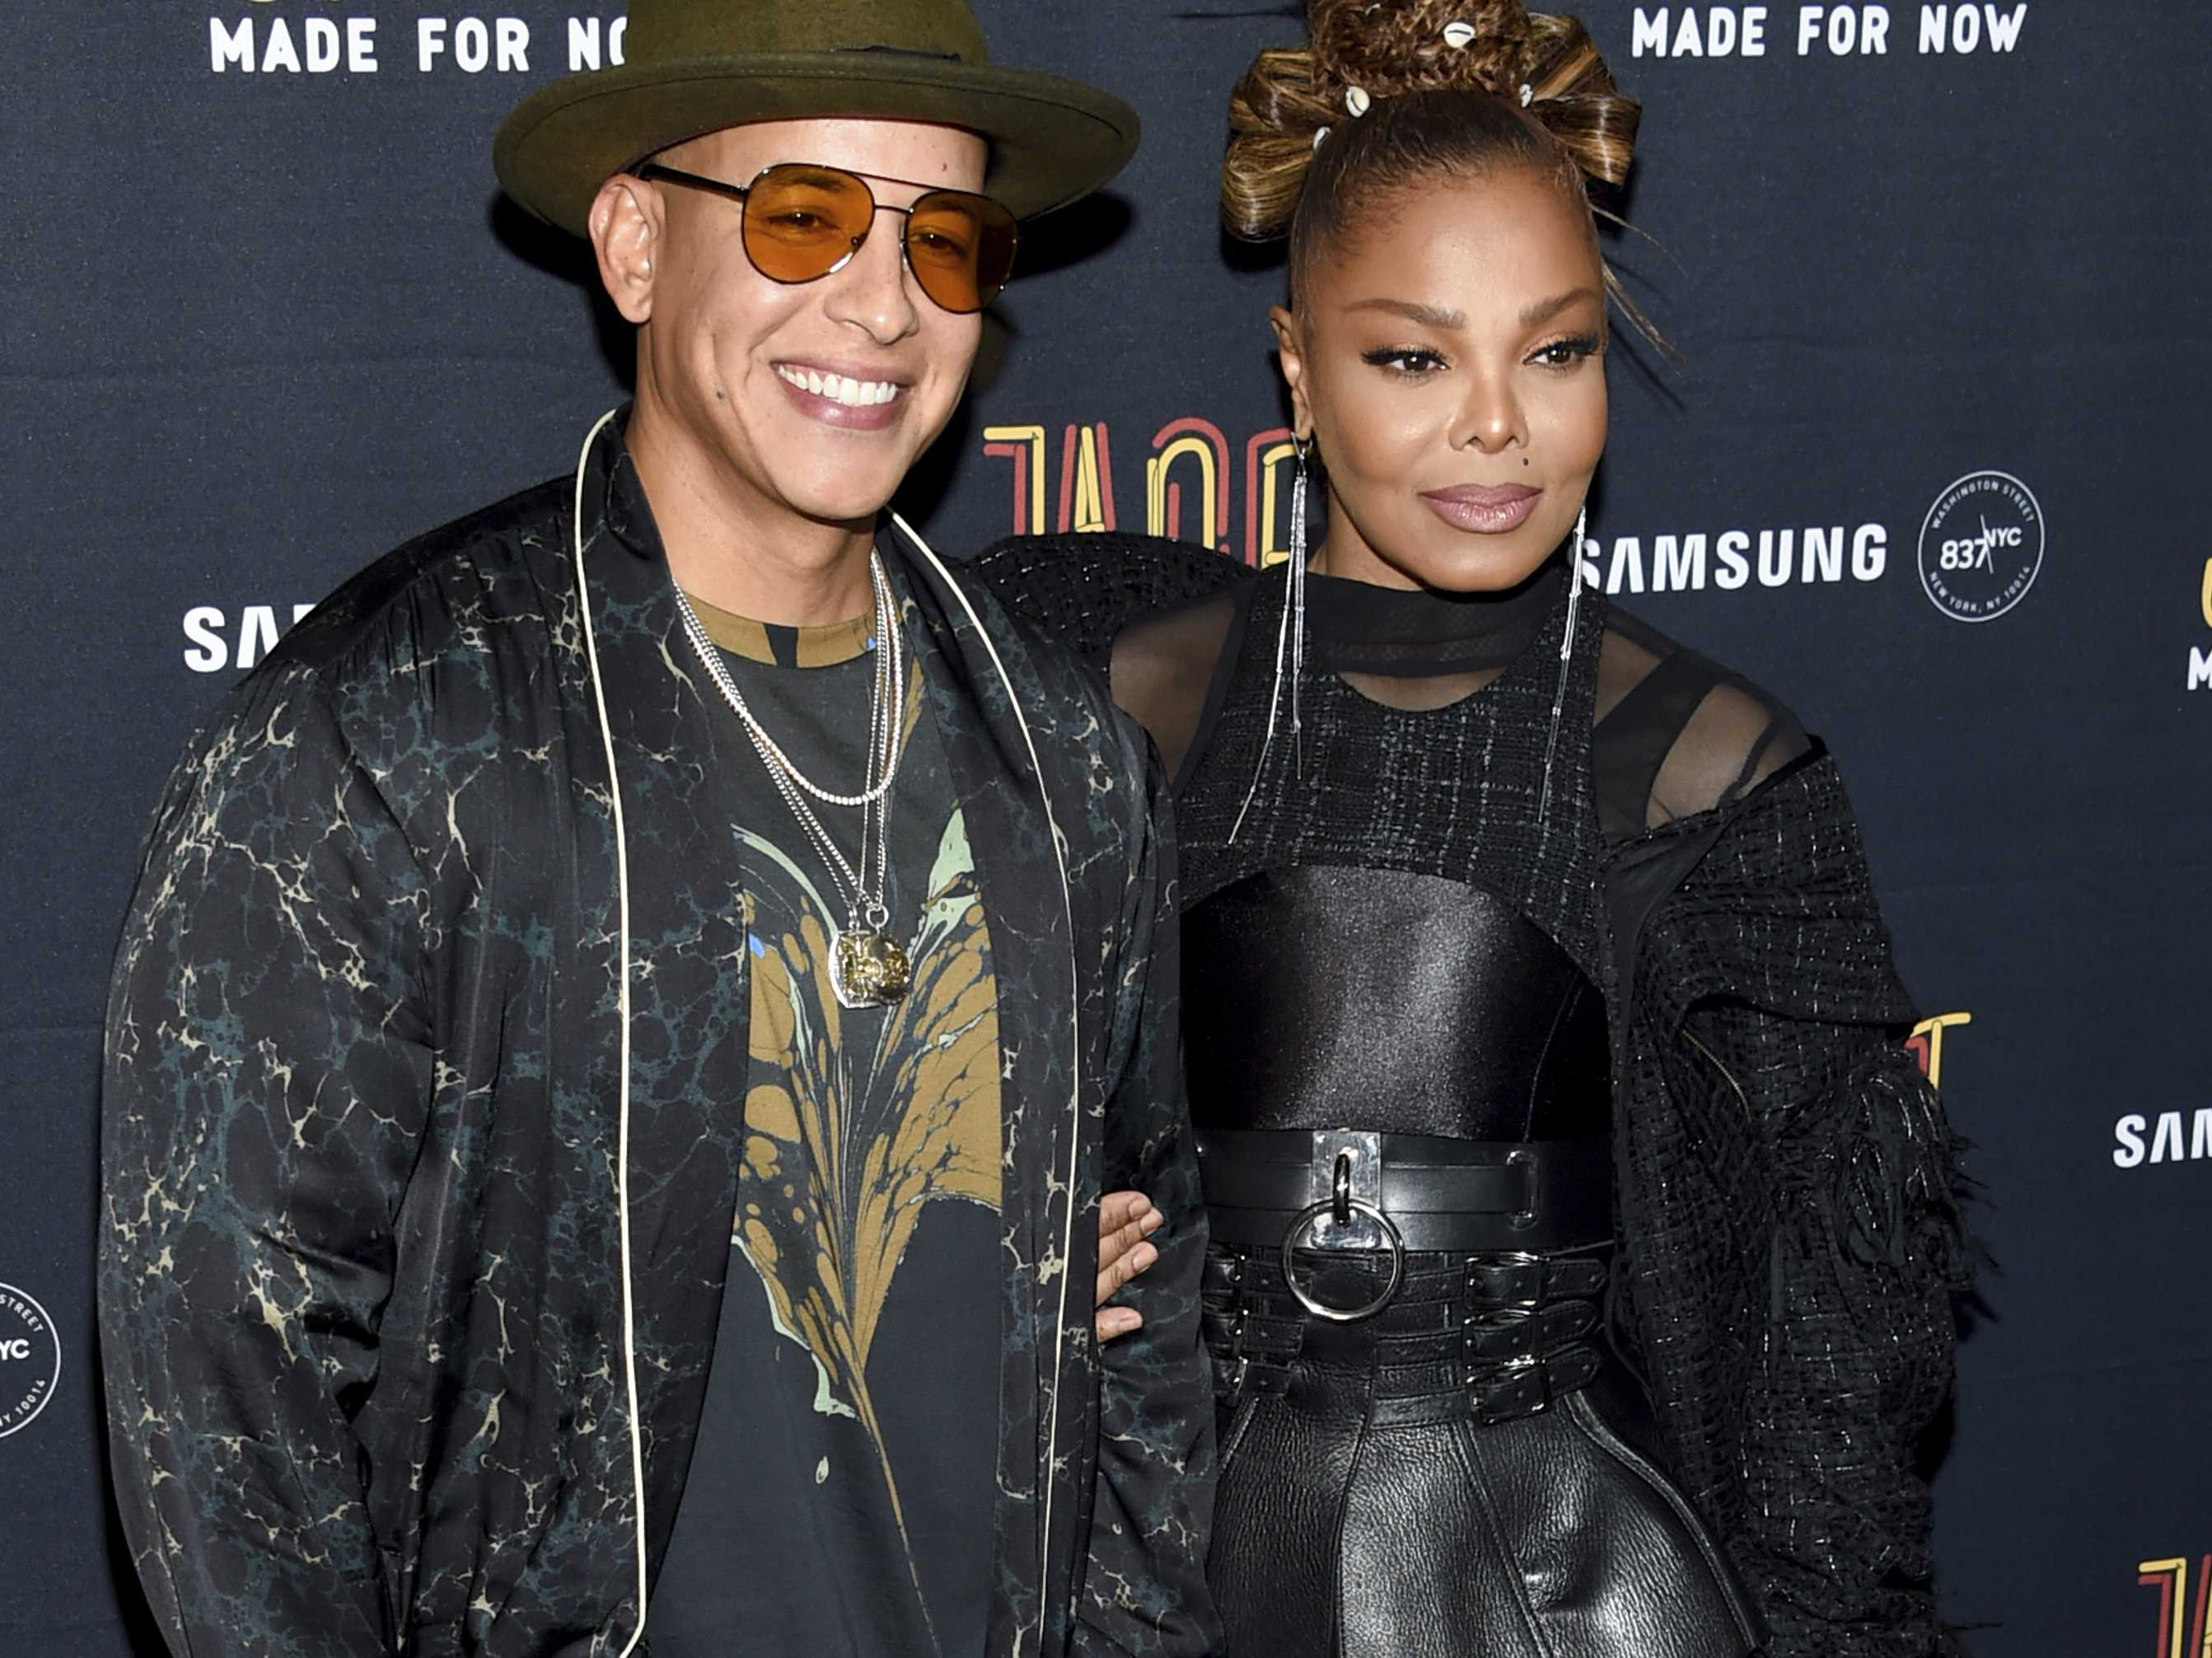 Listen: Janet Jackson, Daddy Yankee Celebrate Release of New Song